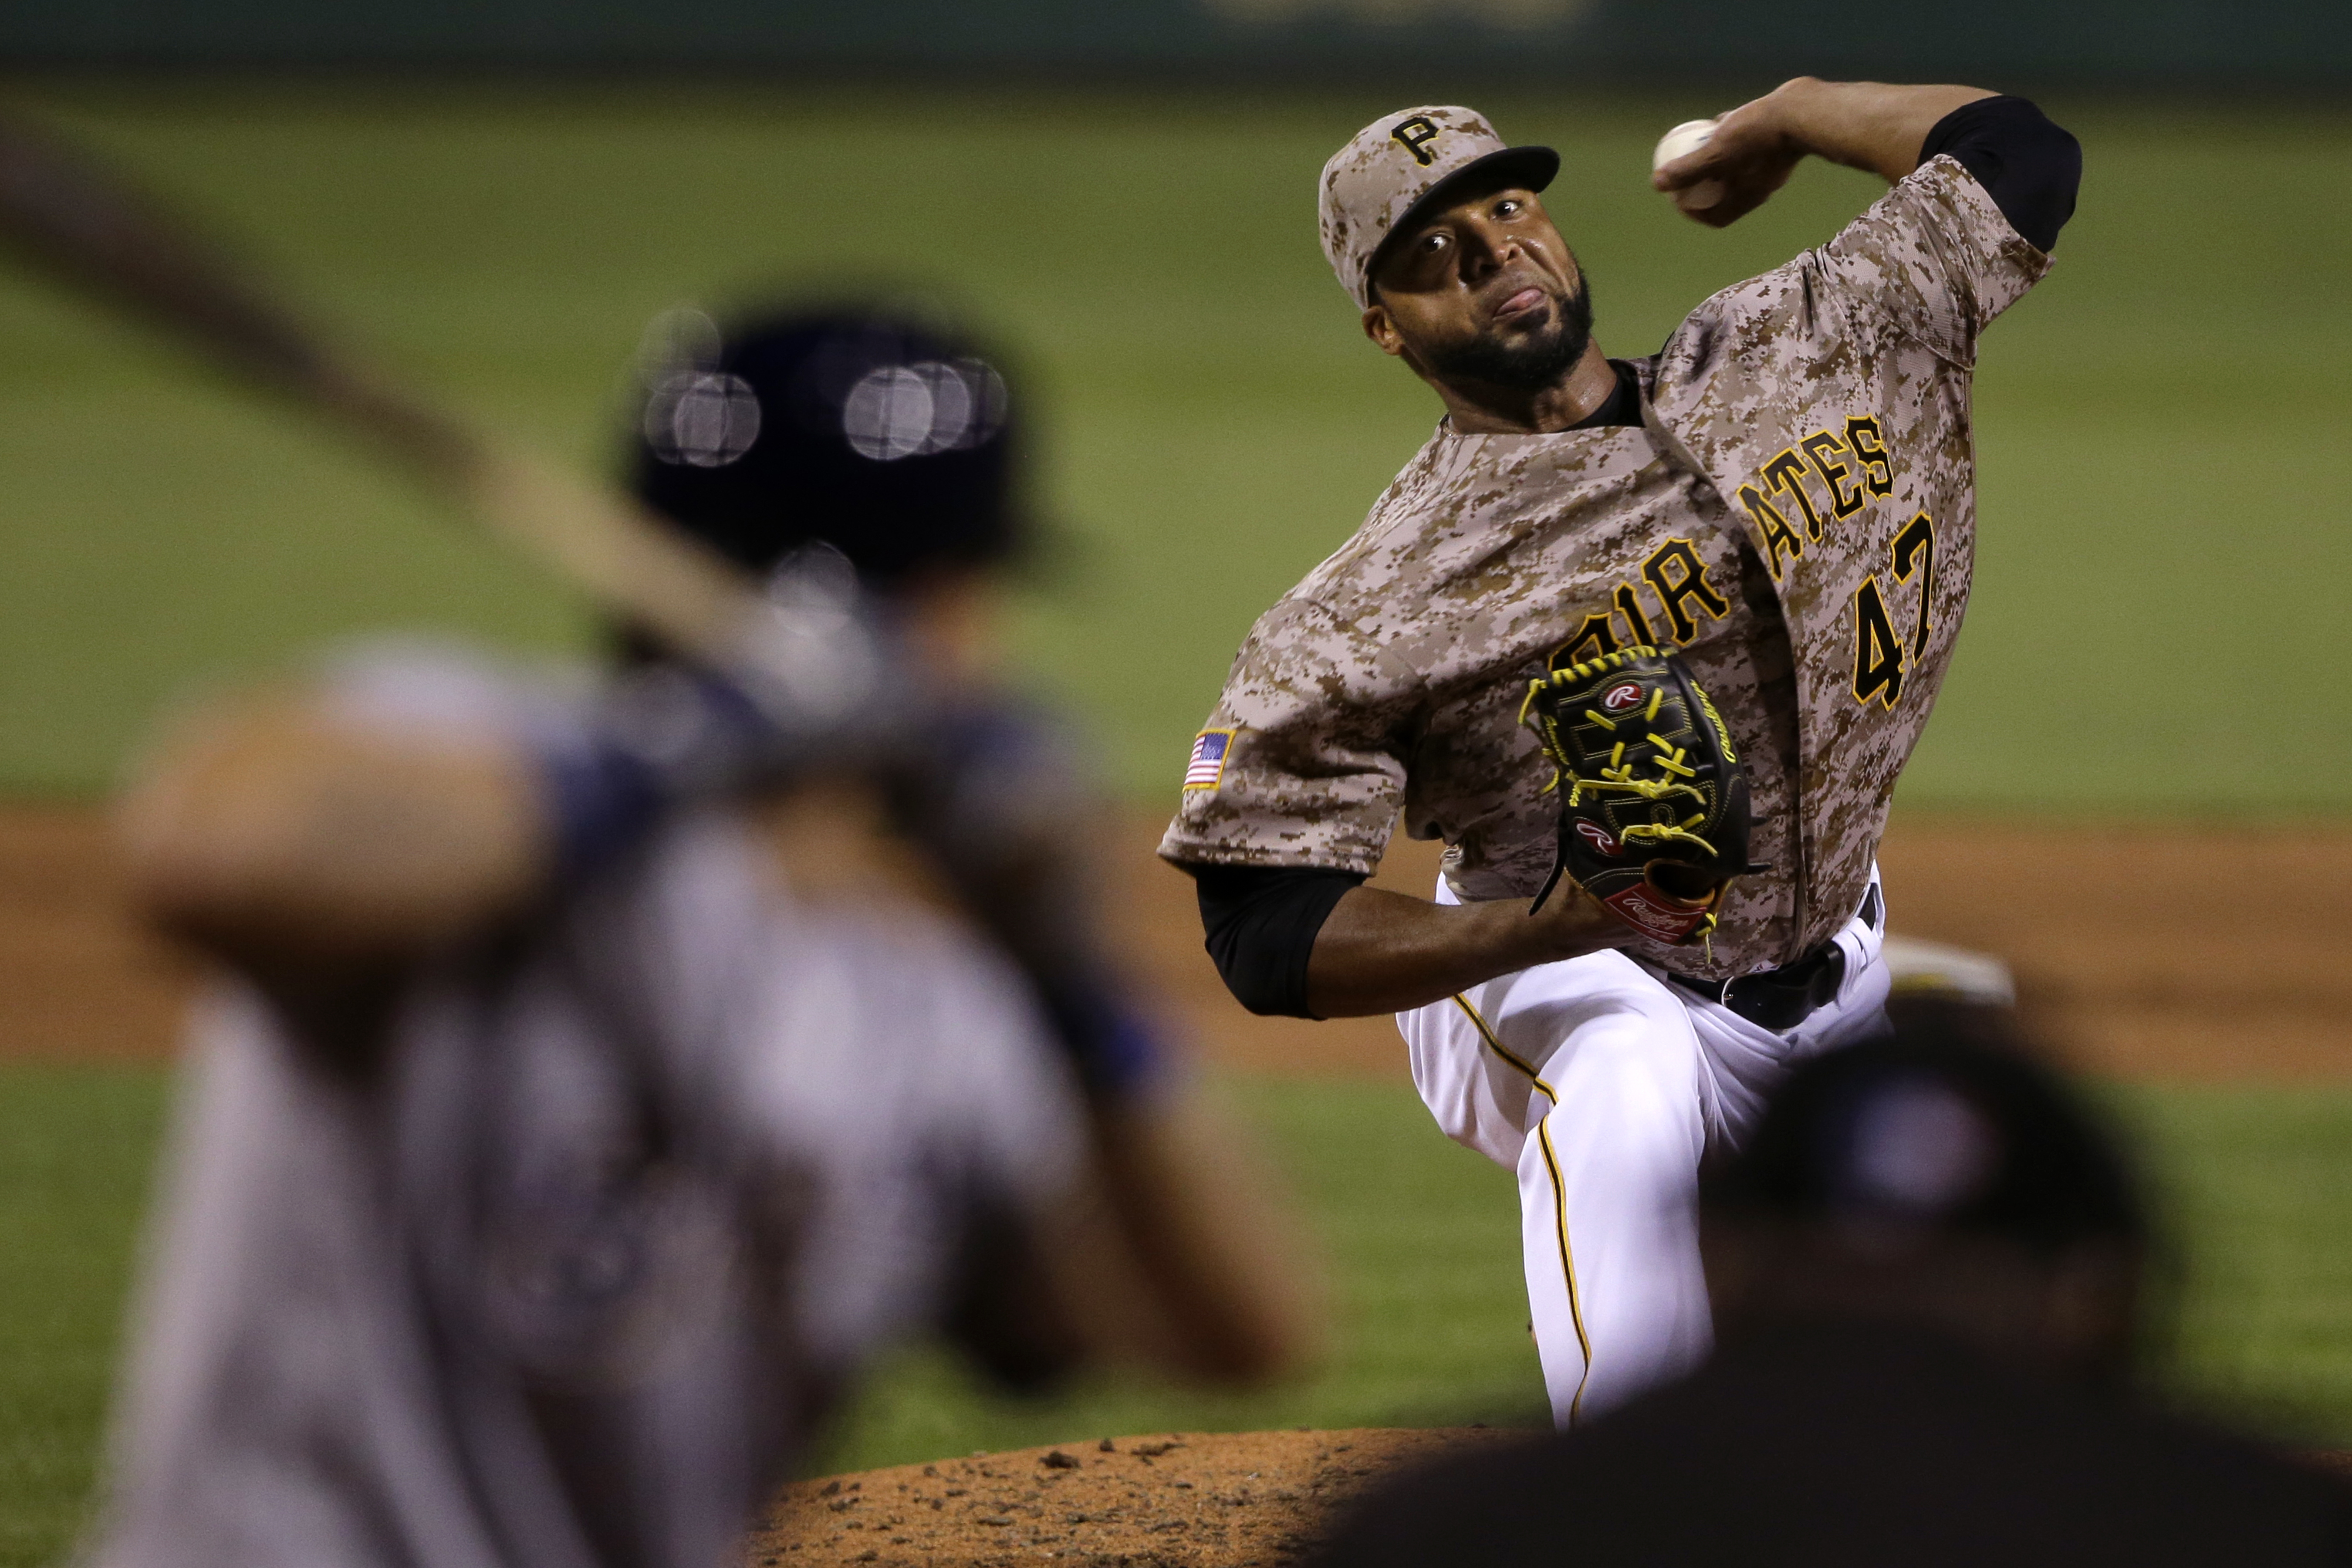 Pittsburgh Pirates starting pitcher Francisco Liriano delivers during the seventh inning of a baseball game against the Milwaukee Brewers in Pittsburgh, Thursday, July 21, 2016. (AP Photo/Gene J. Puskar)